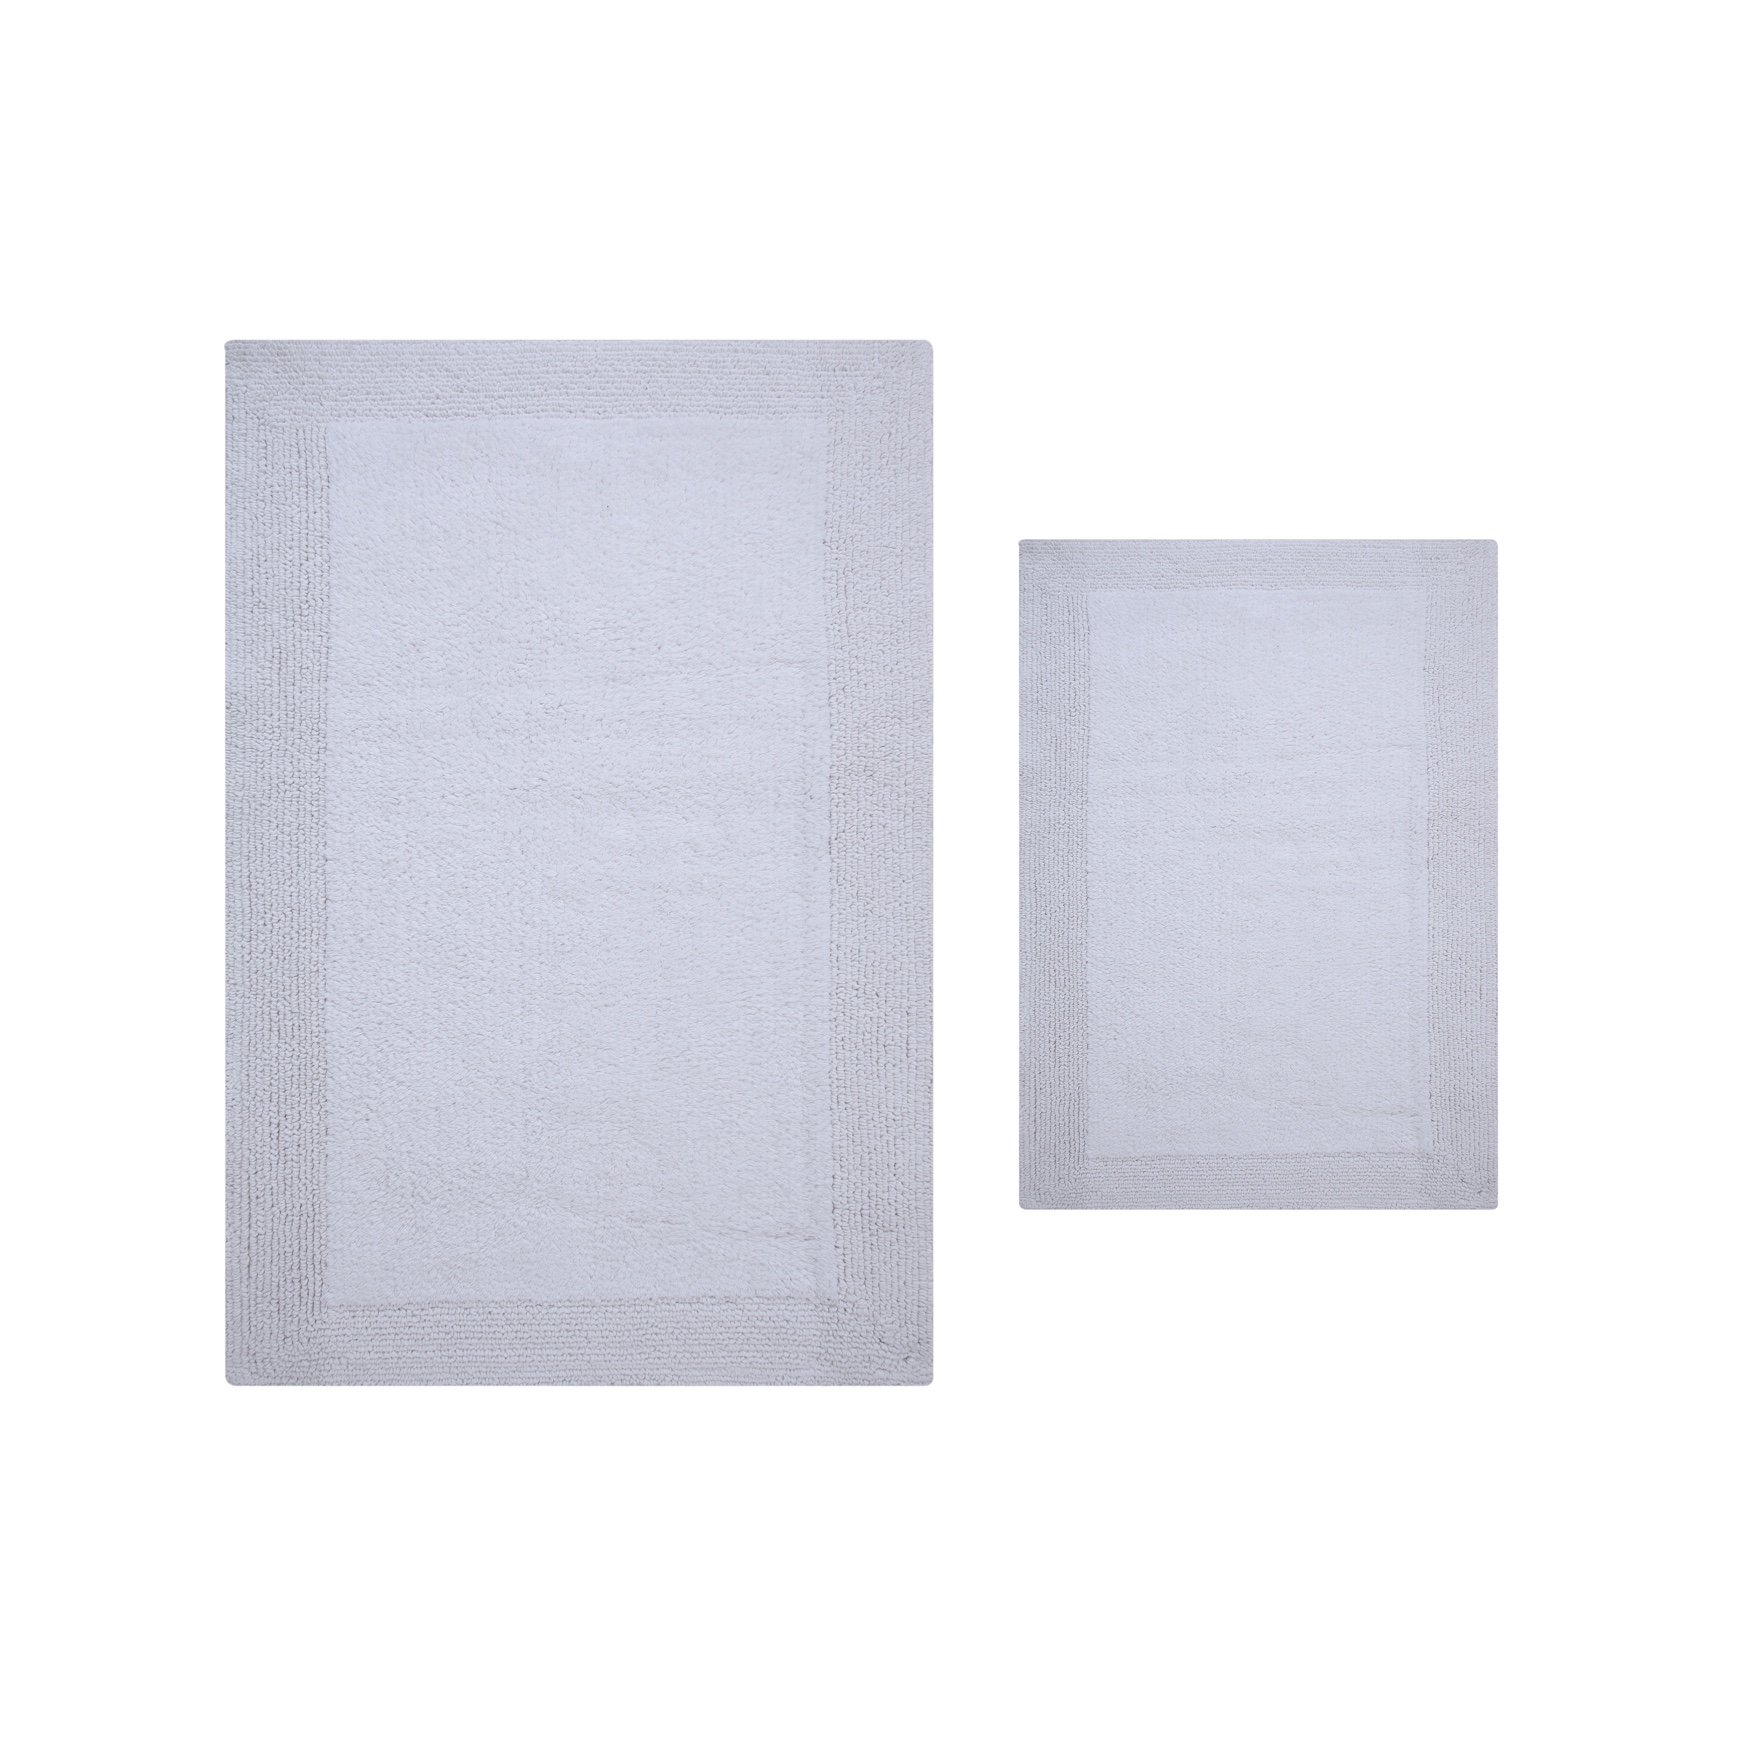 Luxury Hotel Style Bath Rug 2-Pc. Set,